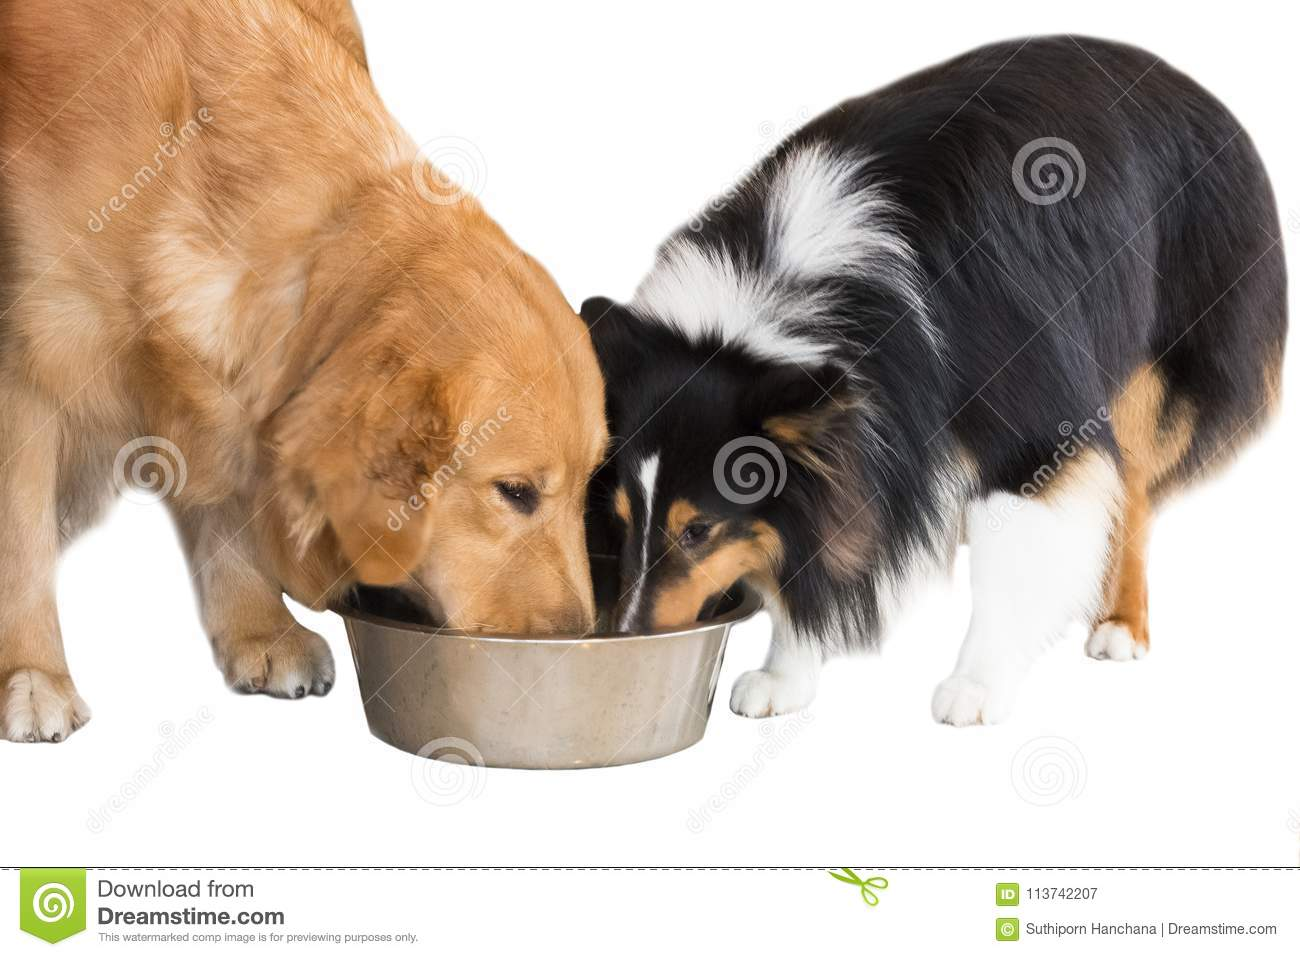 Golden Retriever isolate and Shetland Sheepdog on white background,Clipping path